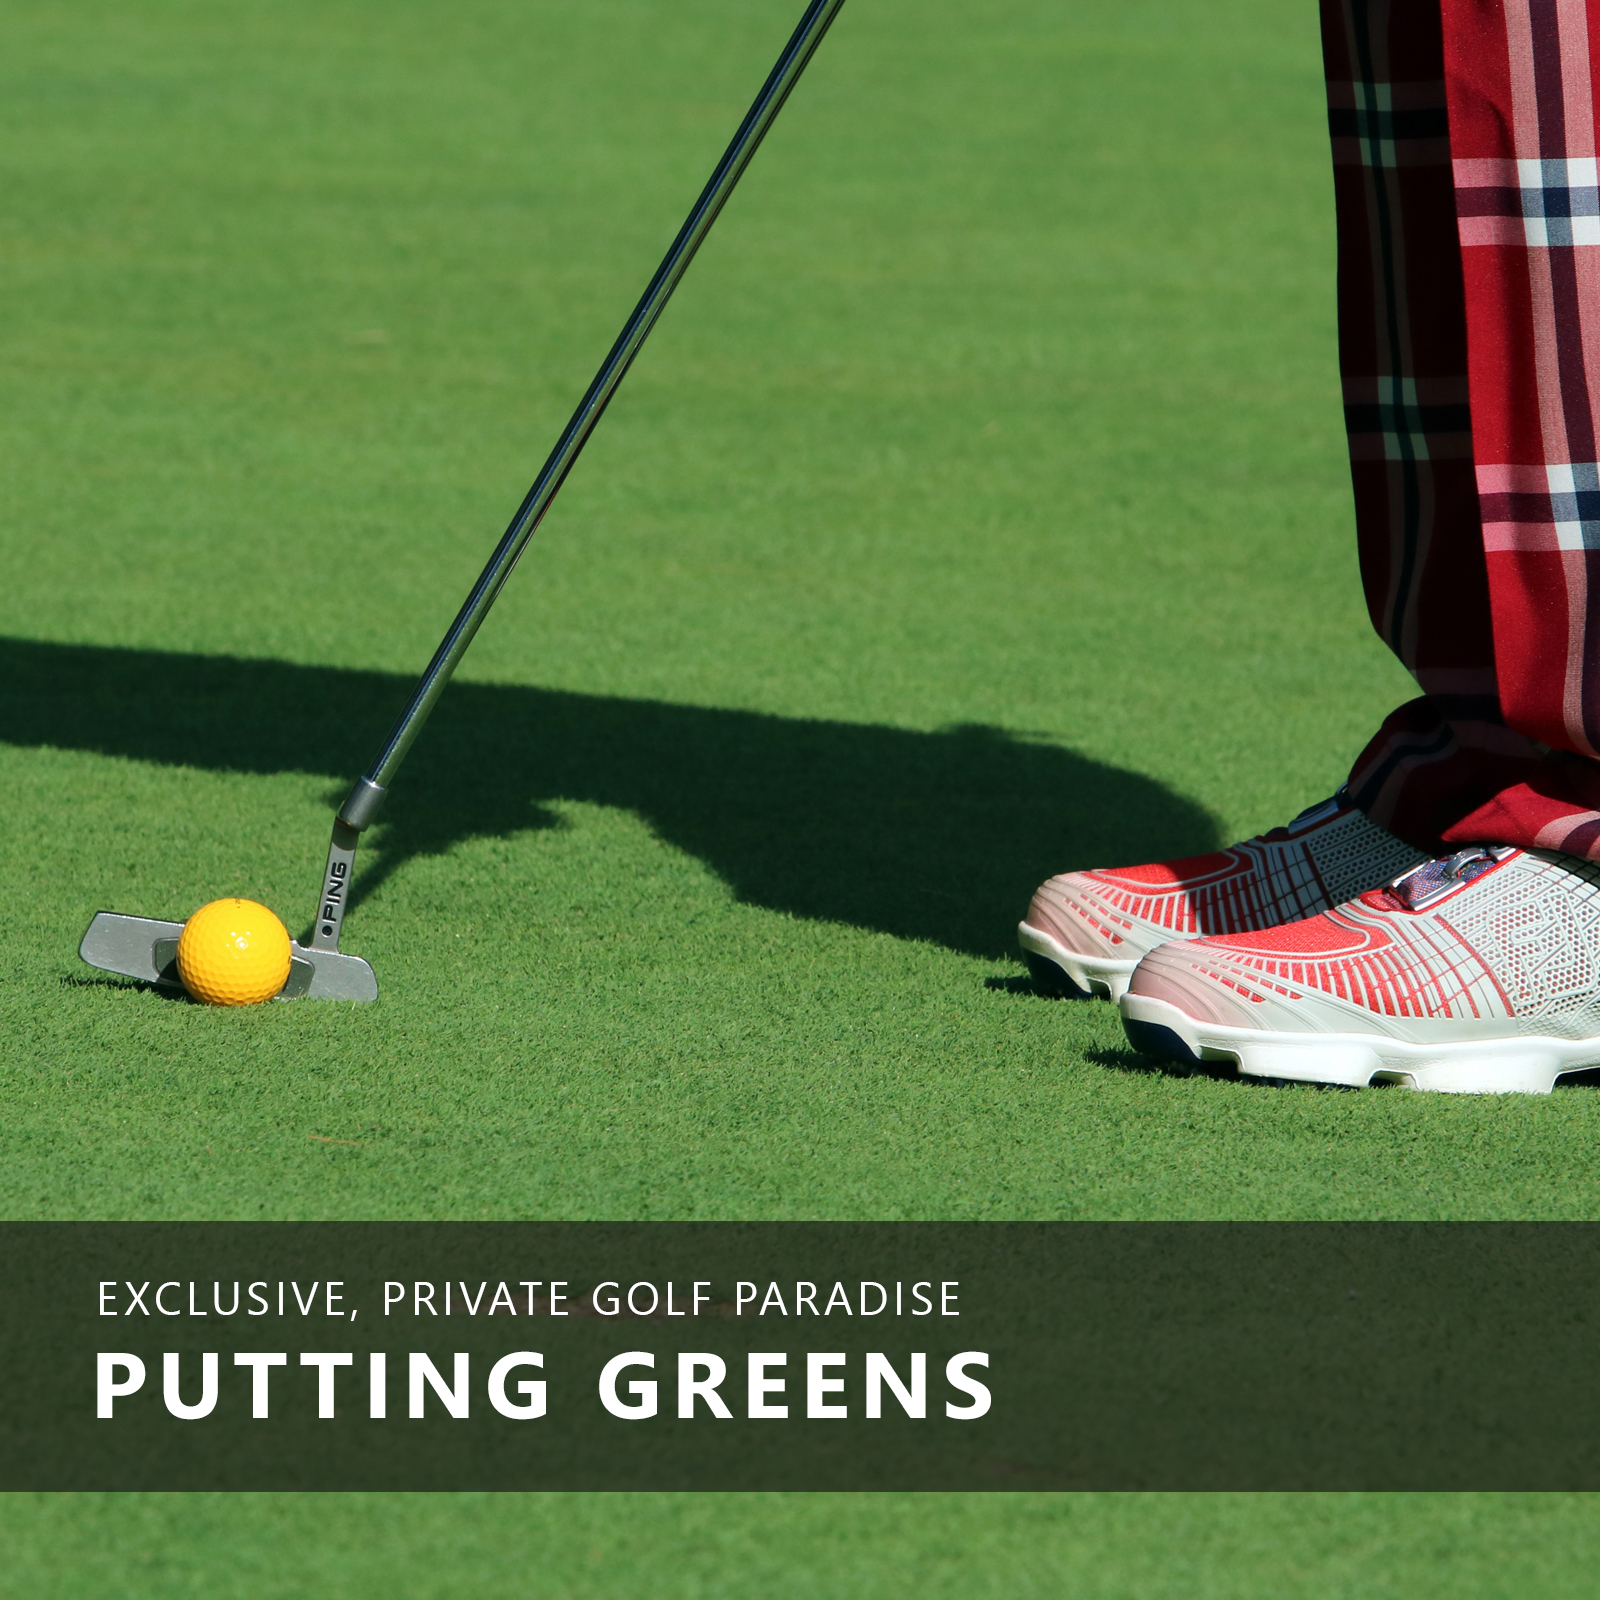 golf practice putting greens yellow gol ball artificial grass turf fake putting green